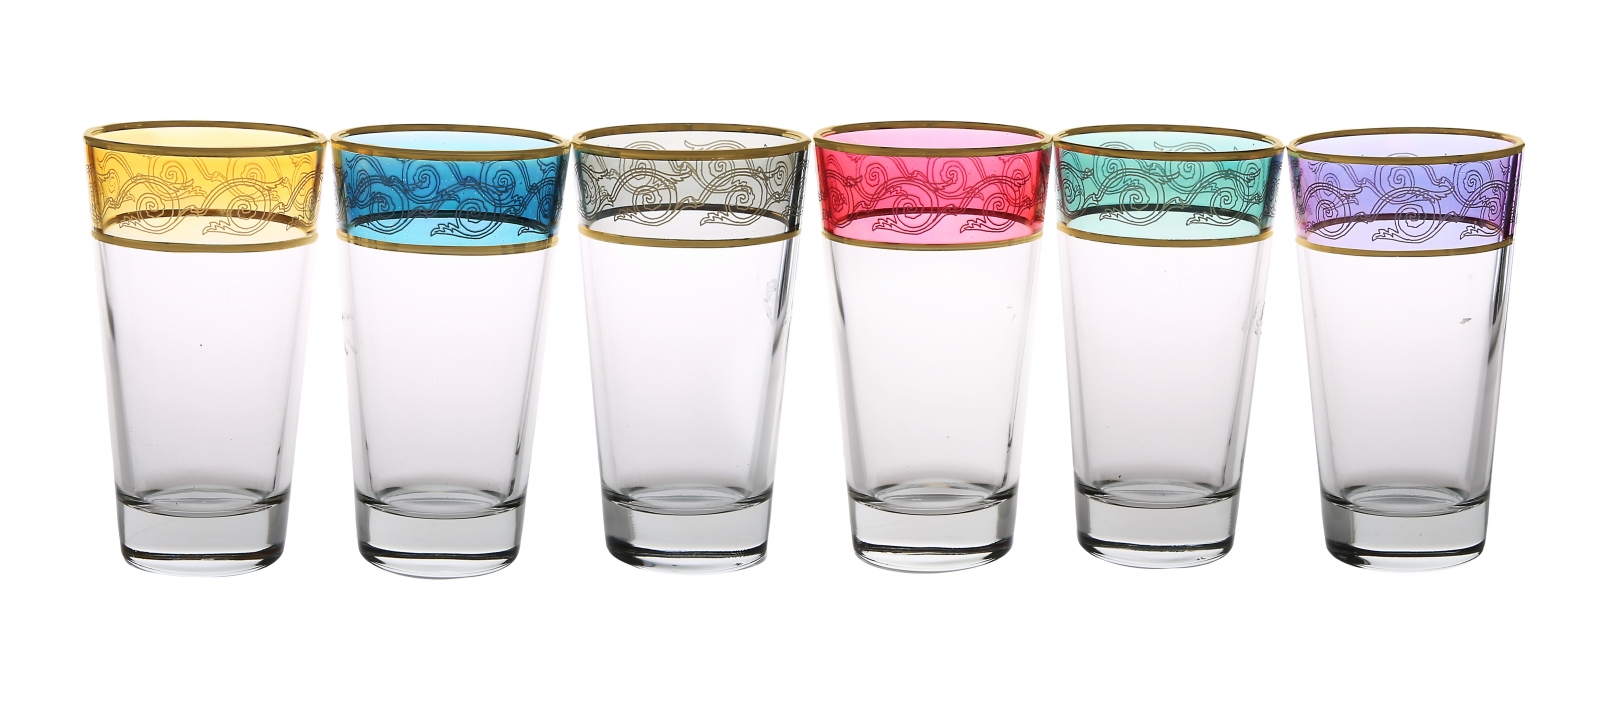 Set of 6 Assorted Colored Tumblers With Gold Design